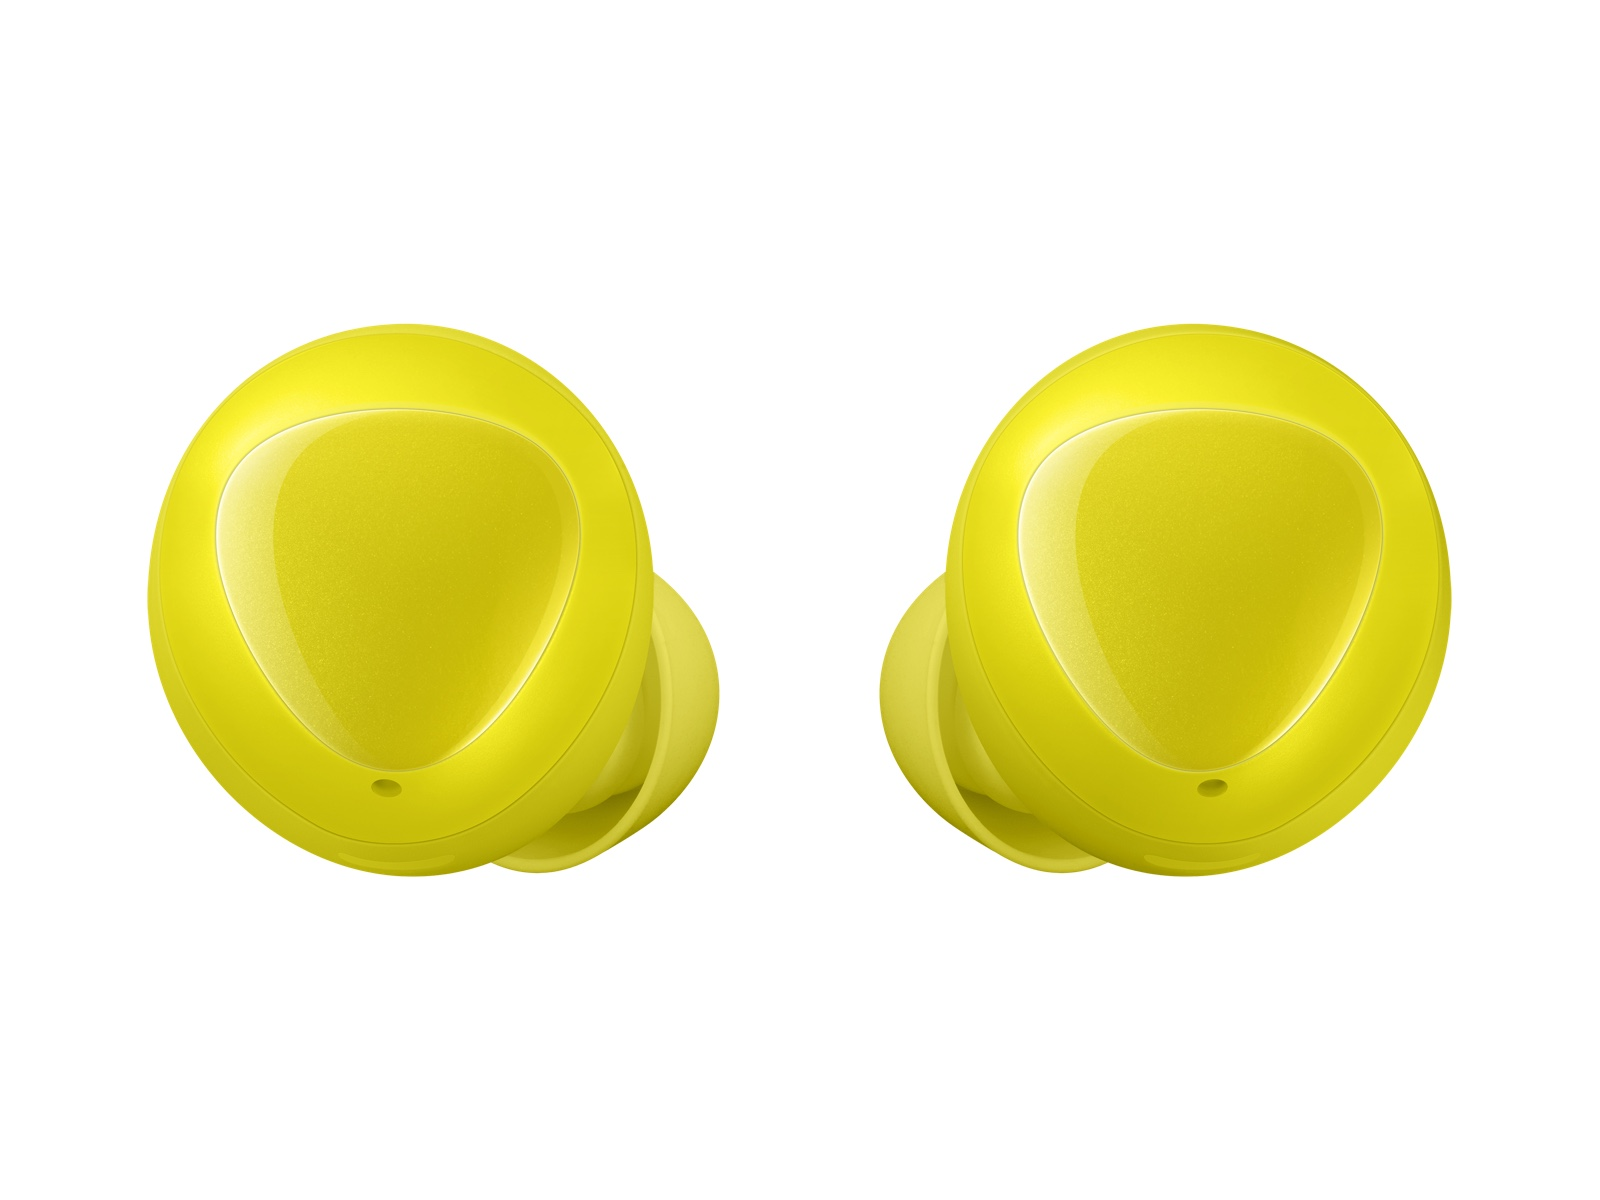 Galaxy Buds, True Wireless Earbuds, Yellow (Wireless Charging Case Included)